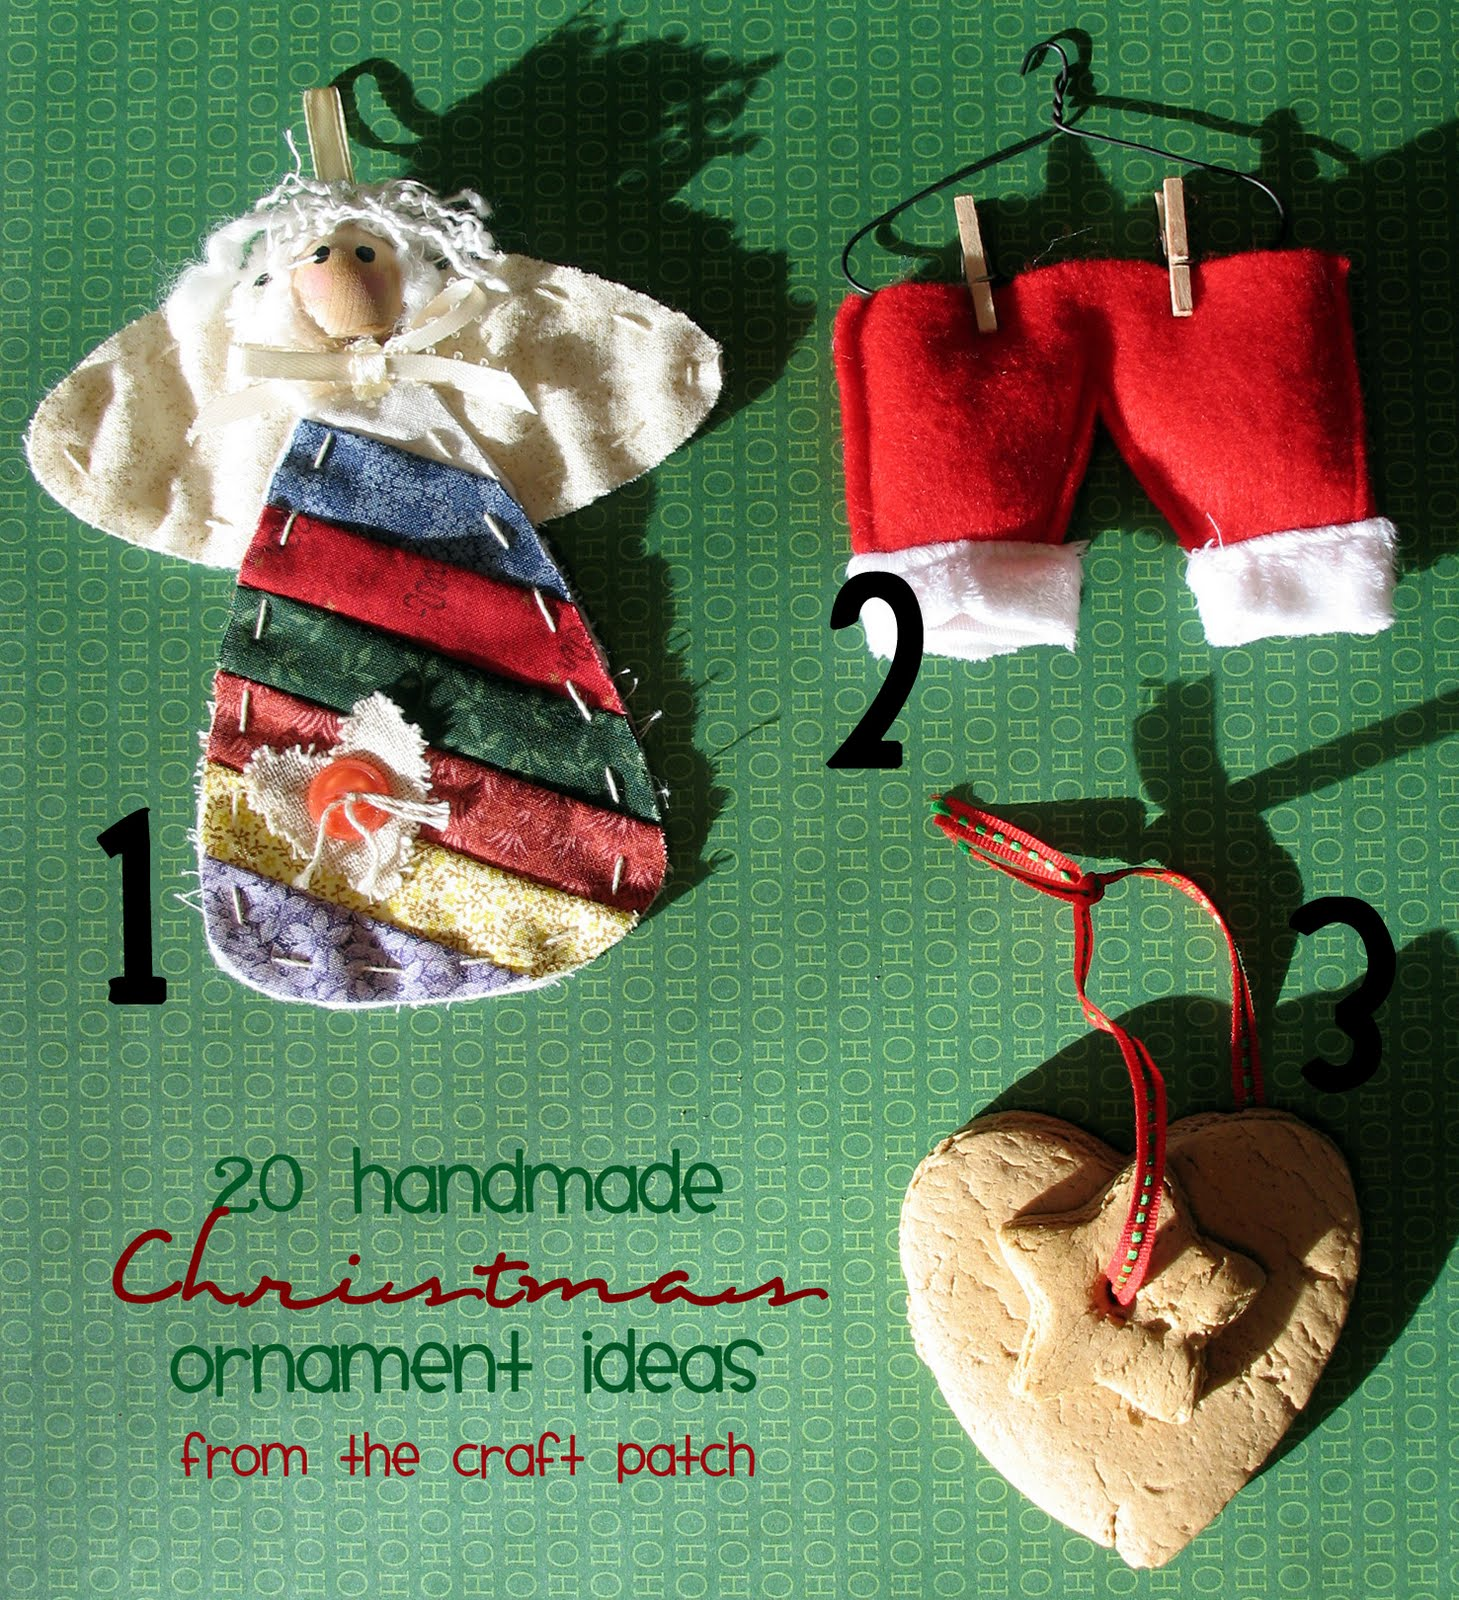 The Craft Patch: Twenty Handmade Christmas Ornament Ideas